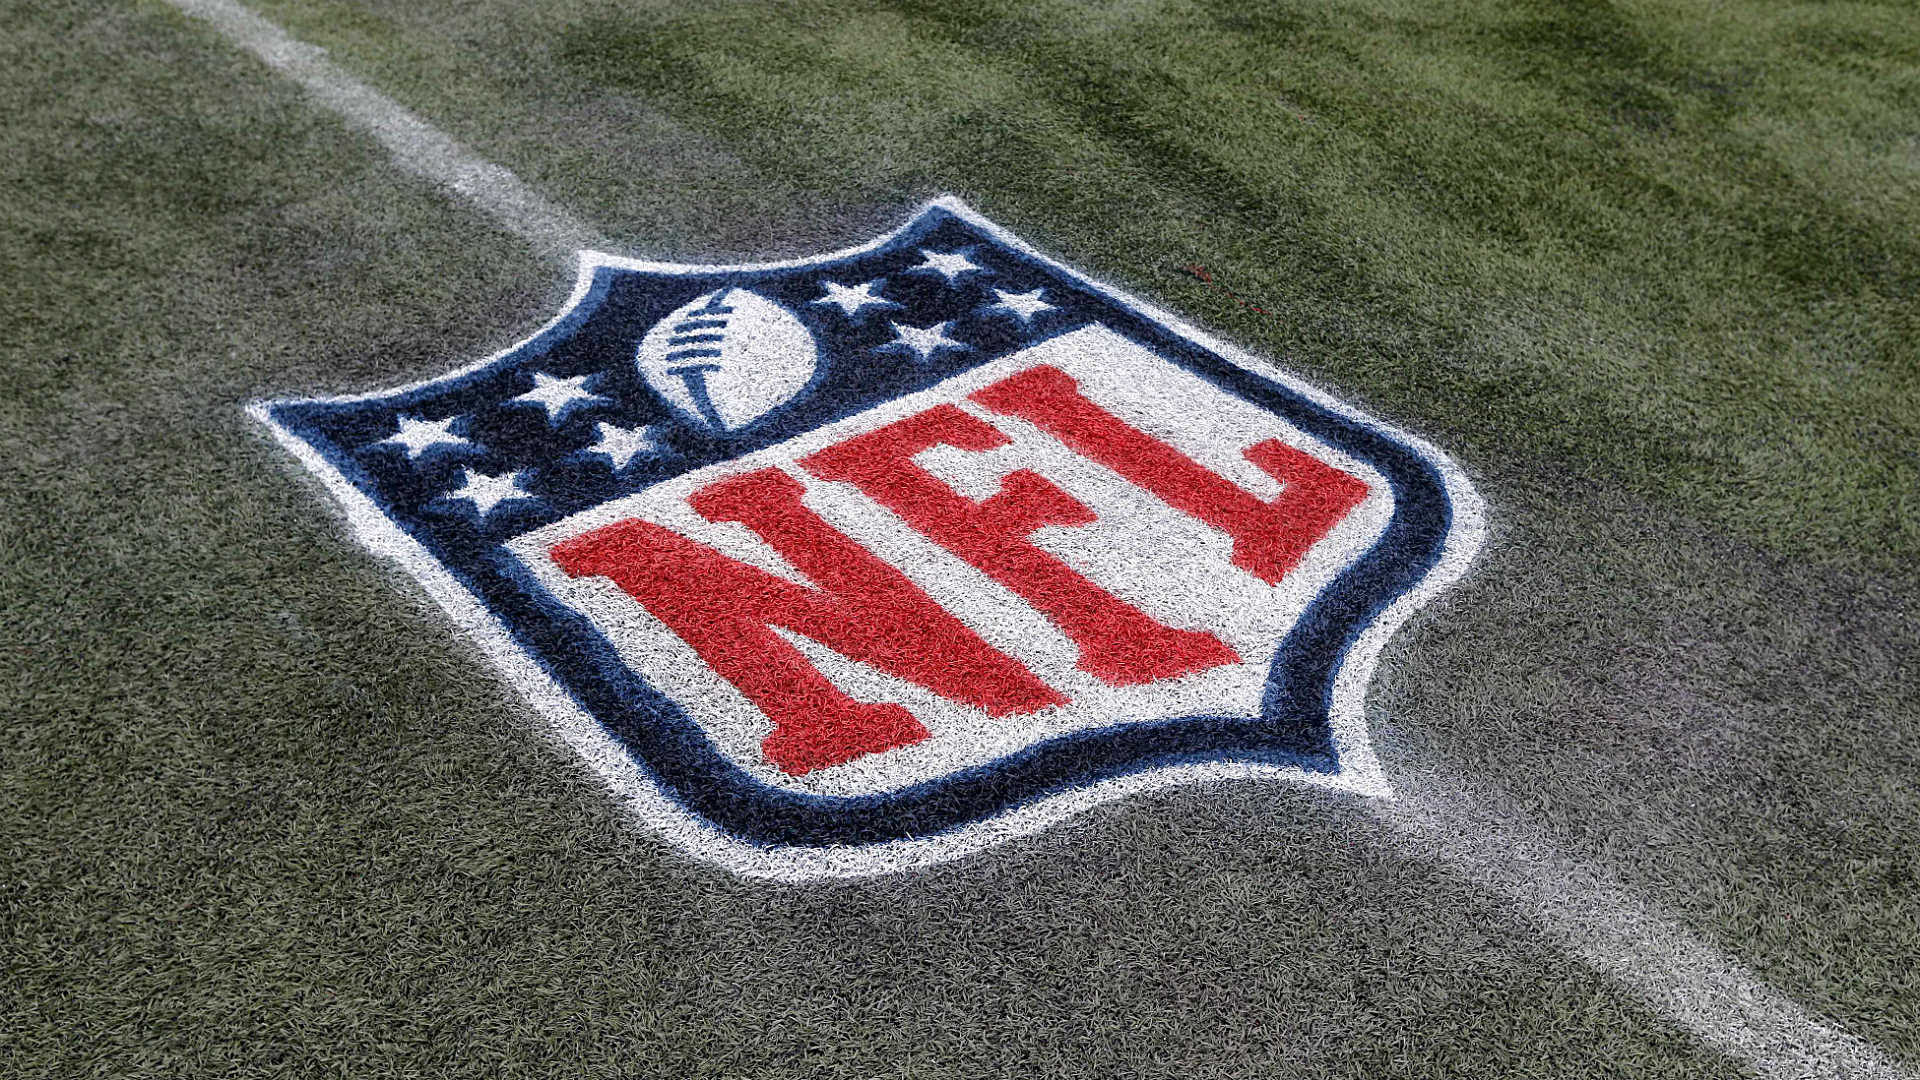 NFL Blog - Week 13 NFL Game Picks 16